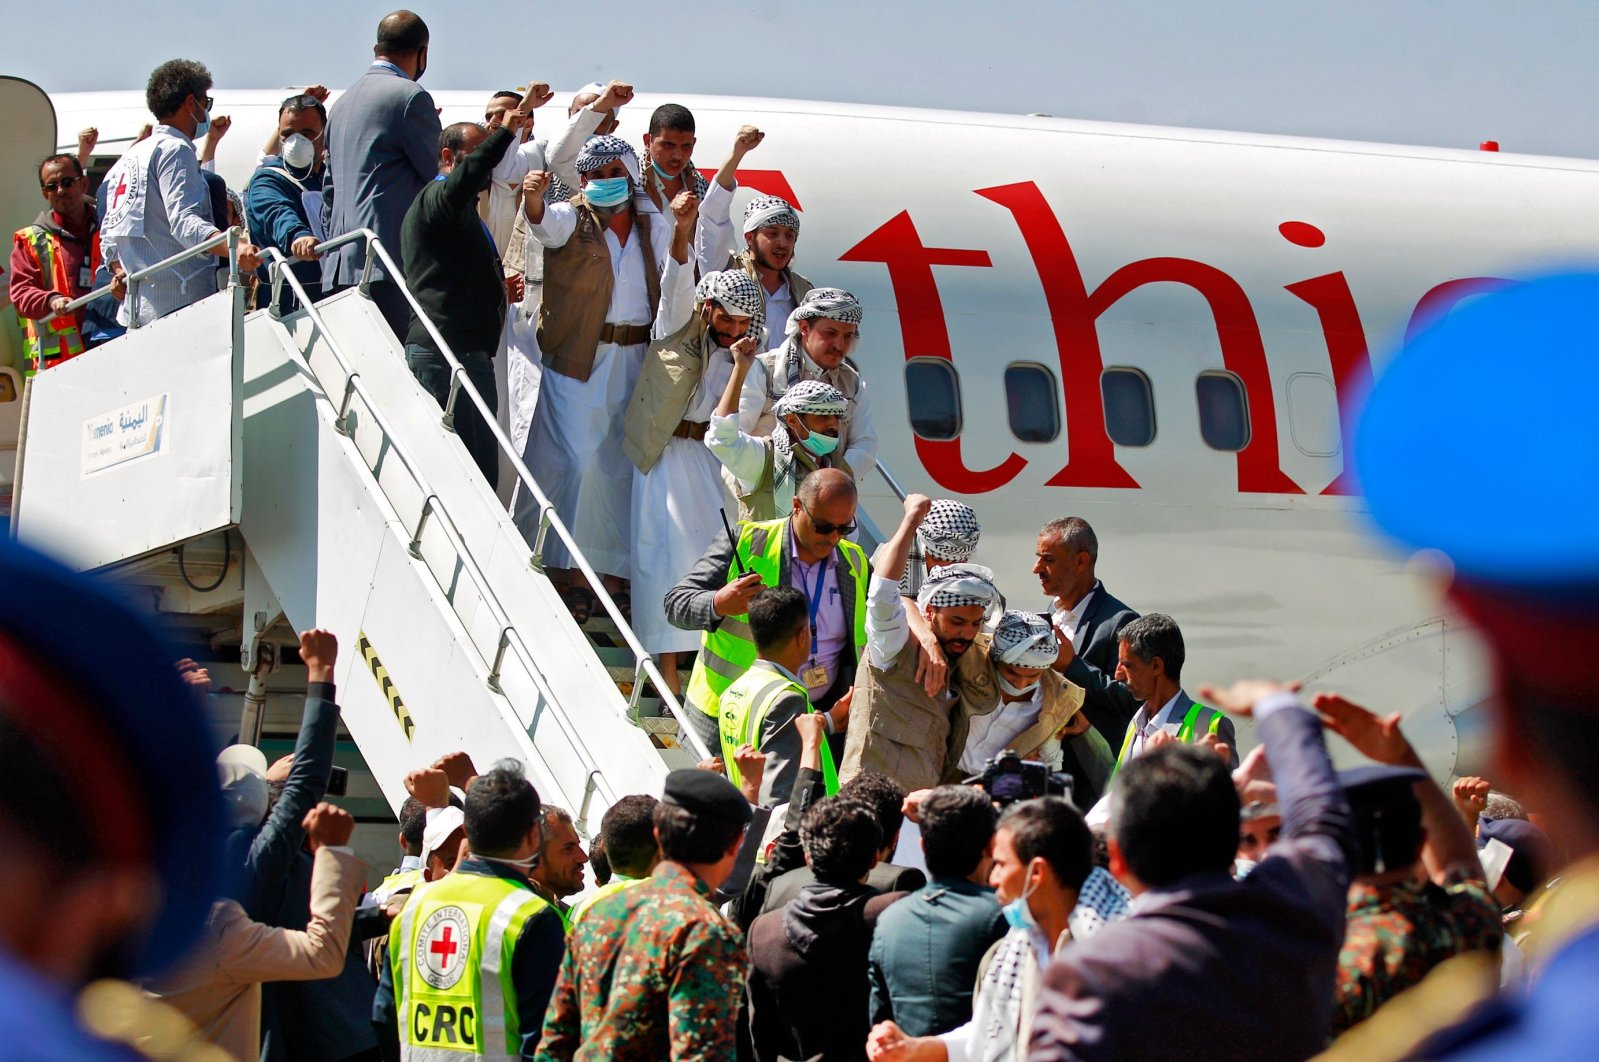 Freed Yemeni Houthi prisoners wave to the crowd as they descend the stairs of the plane that transported them after being released as the war-torn country began swapping 1,000 prisoners in a complex operation overseen by the International Committee of the Red Cross, Sanaa, Yemen, Oct. 15, 2020. (AFP Photo)